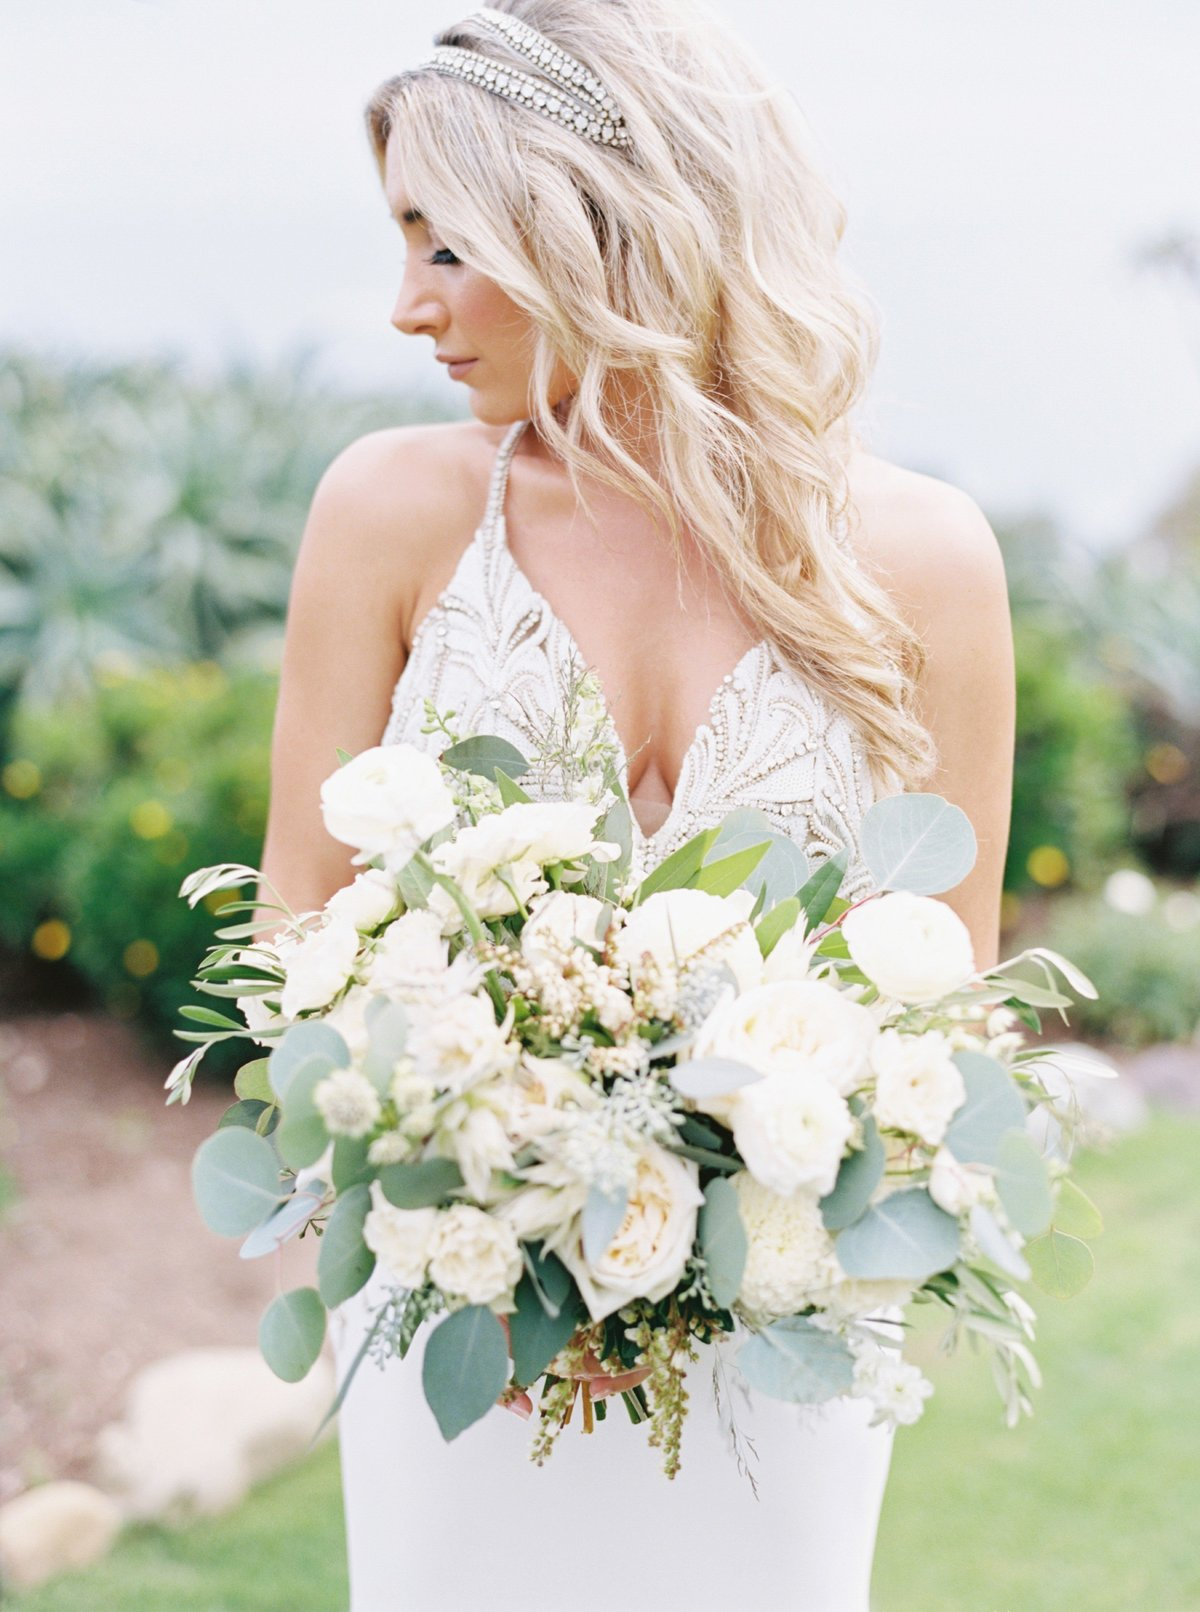 nicoleclareyphotography_evan+jeff_laguna beach_wedding_0011